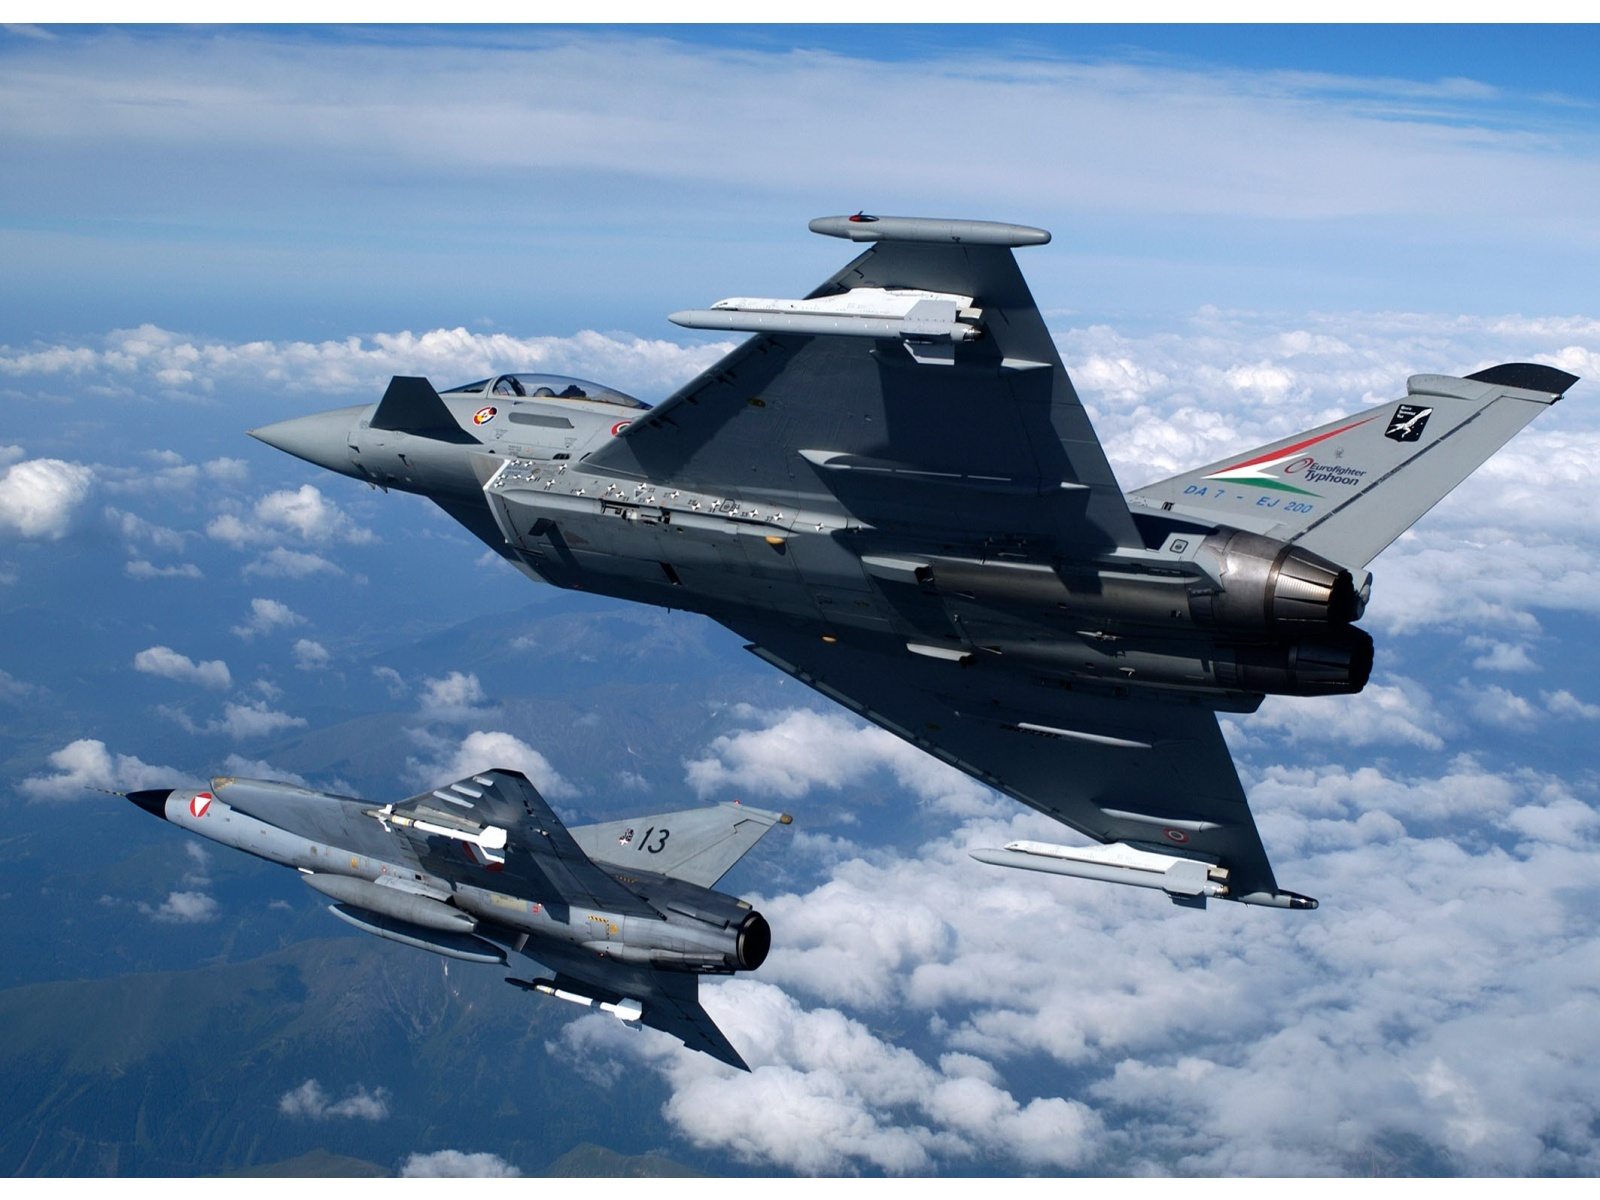 Two Eurofighter Typhoon